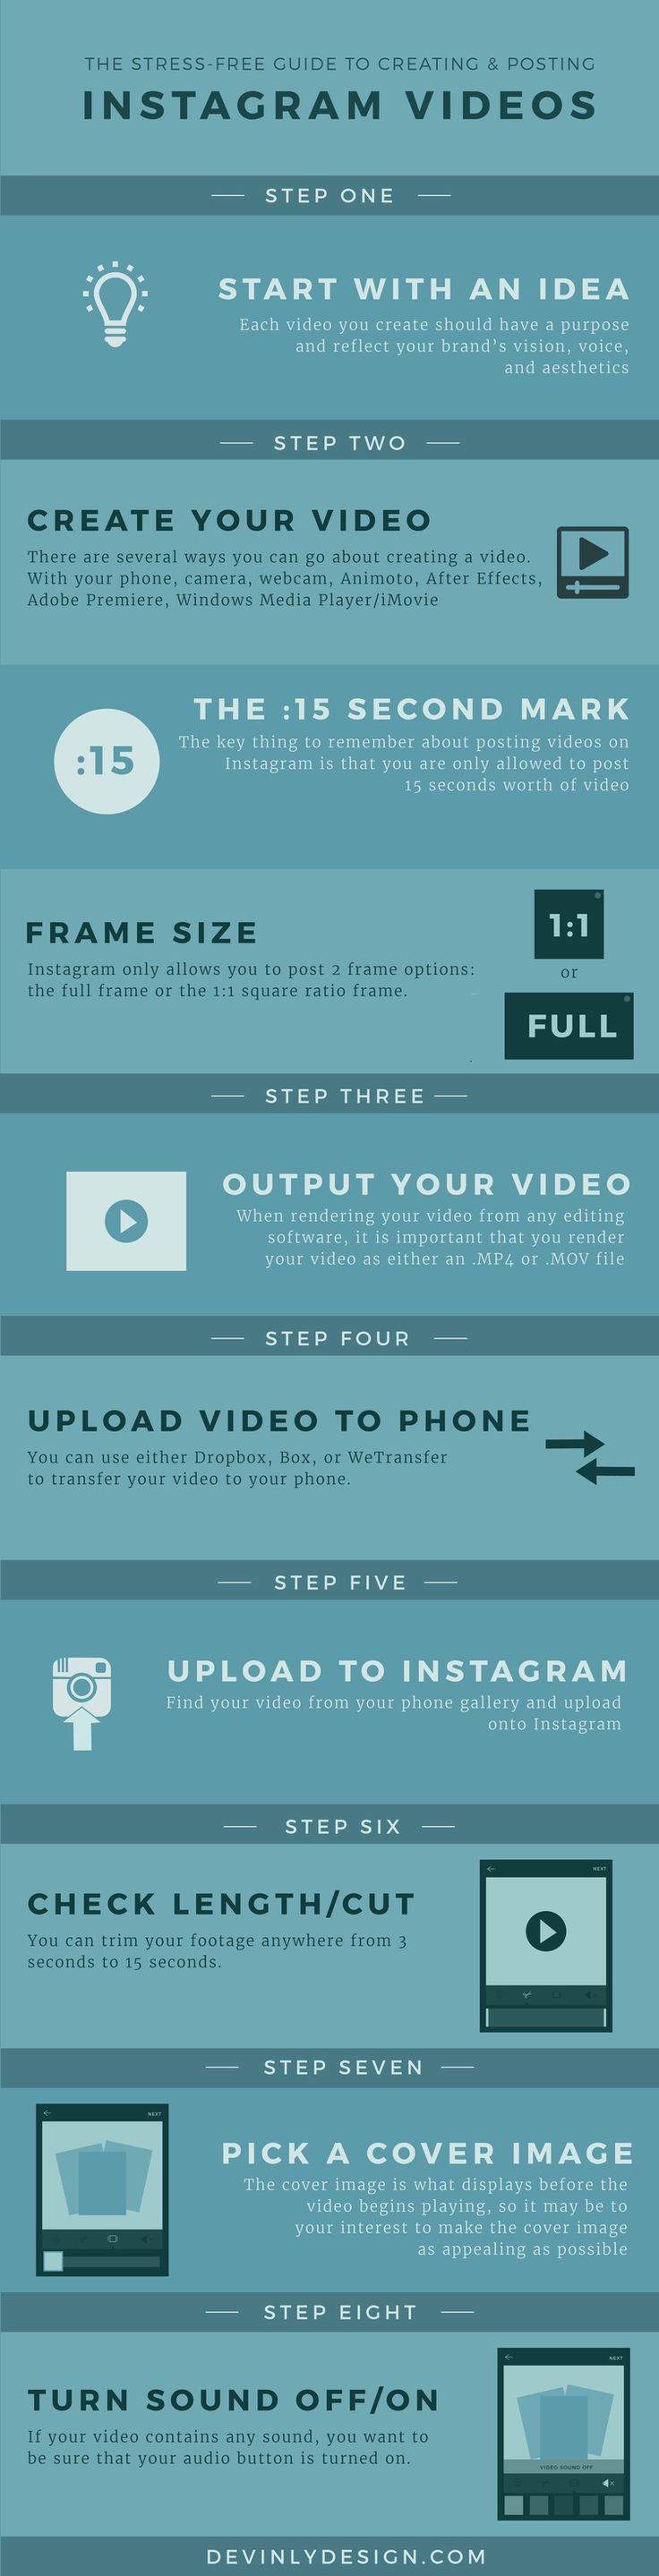 The Stress-Free Guide to Creating & Posting Instagram Videos ...